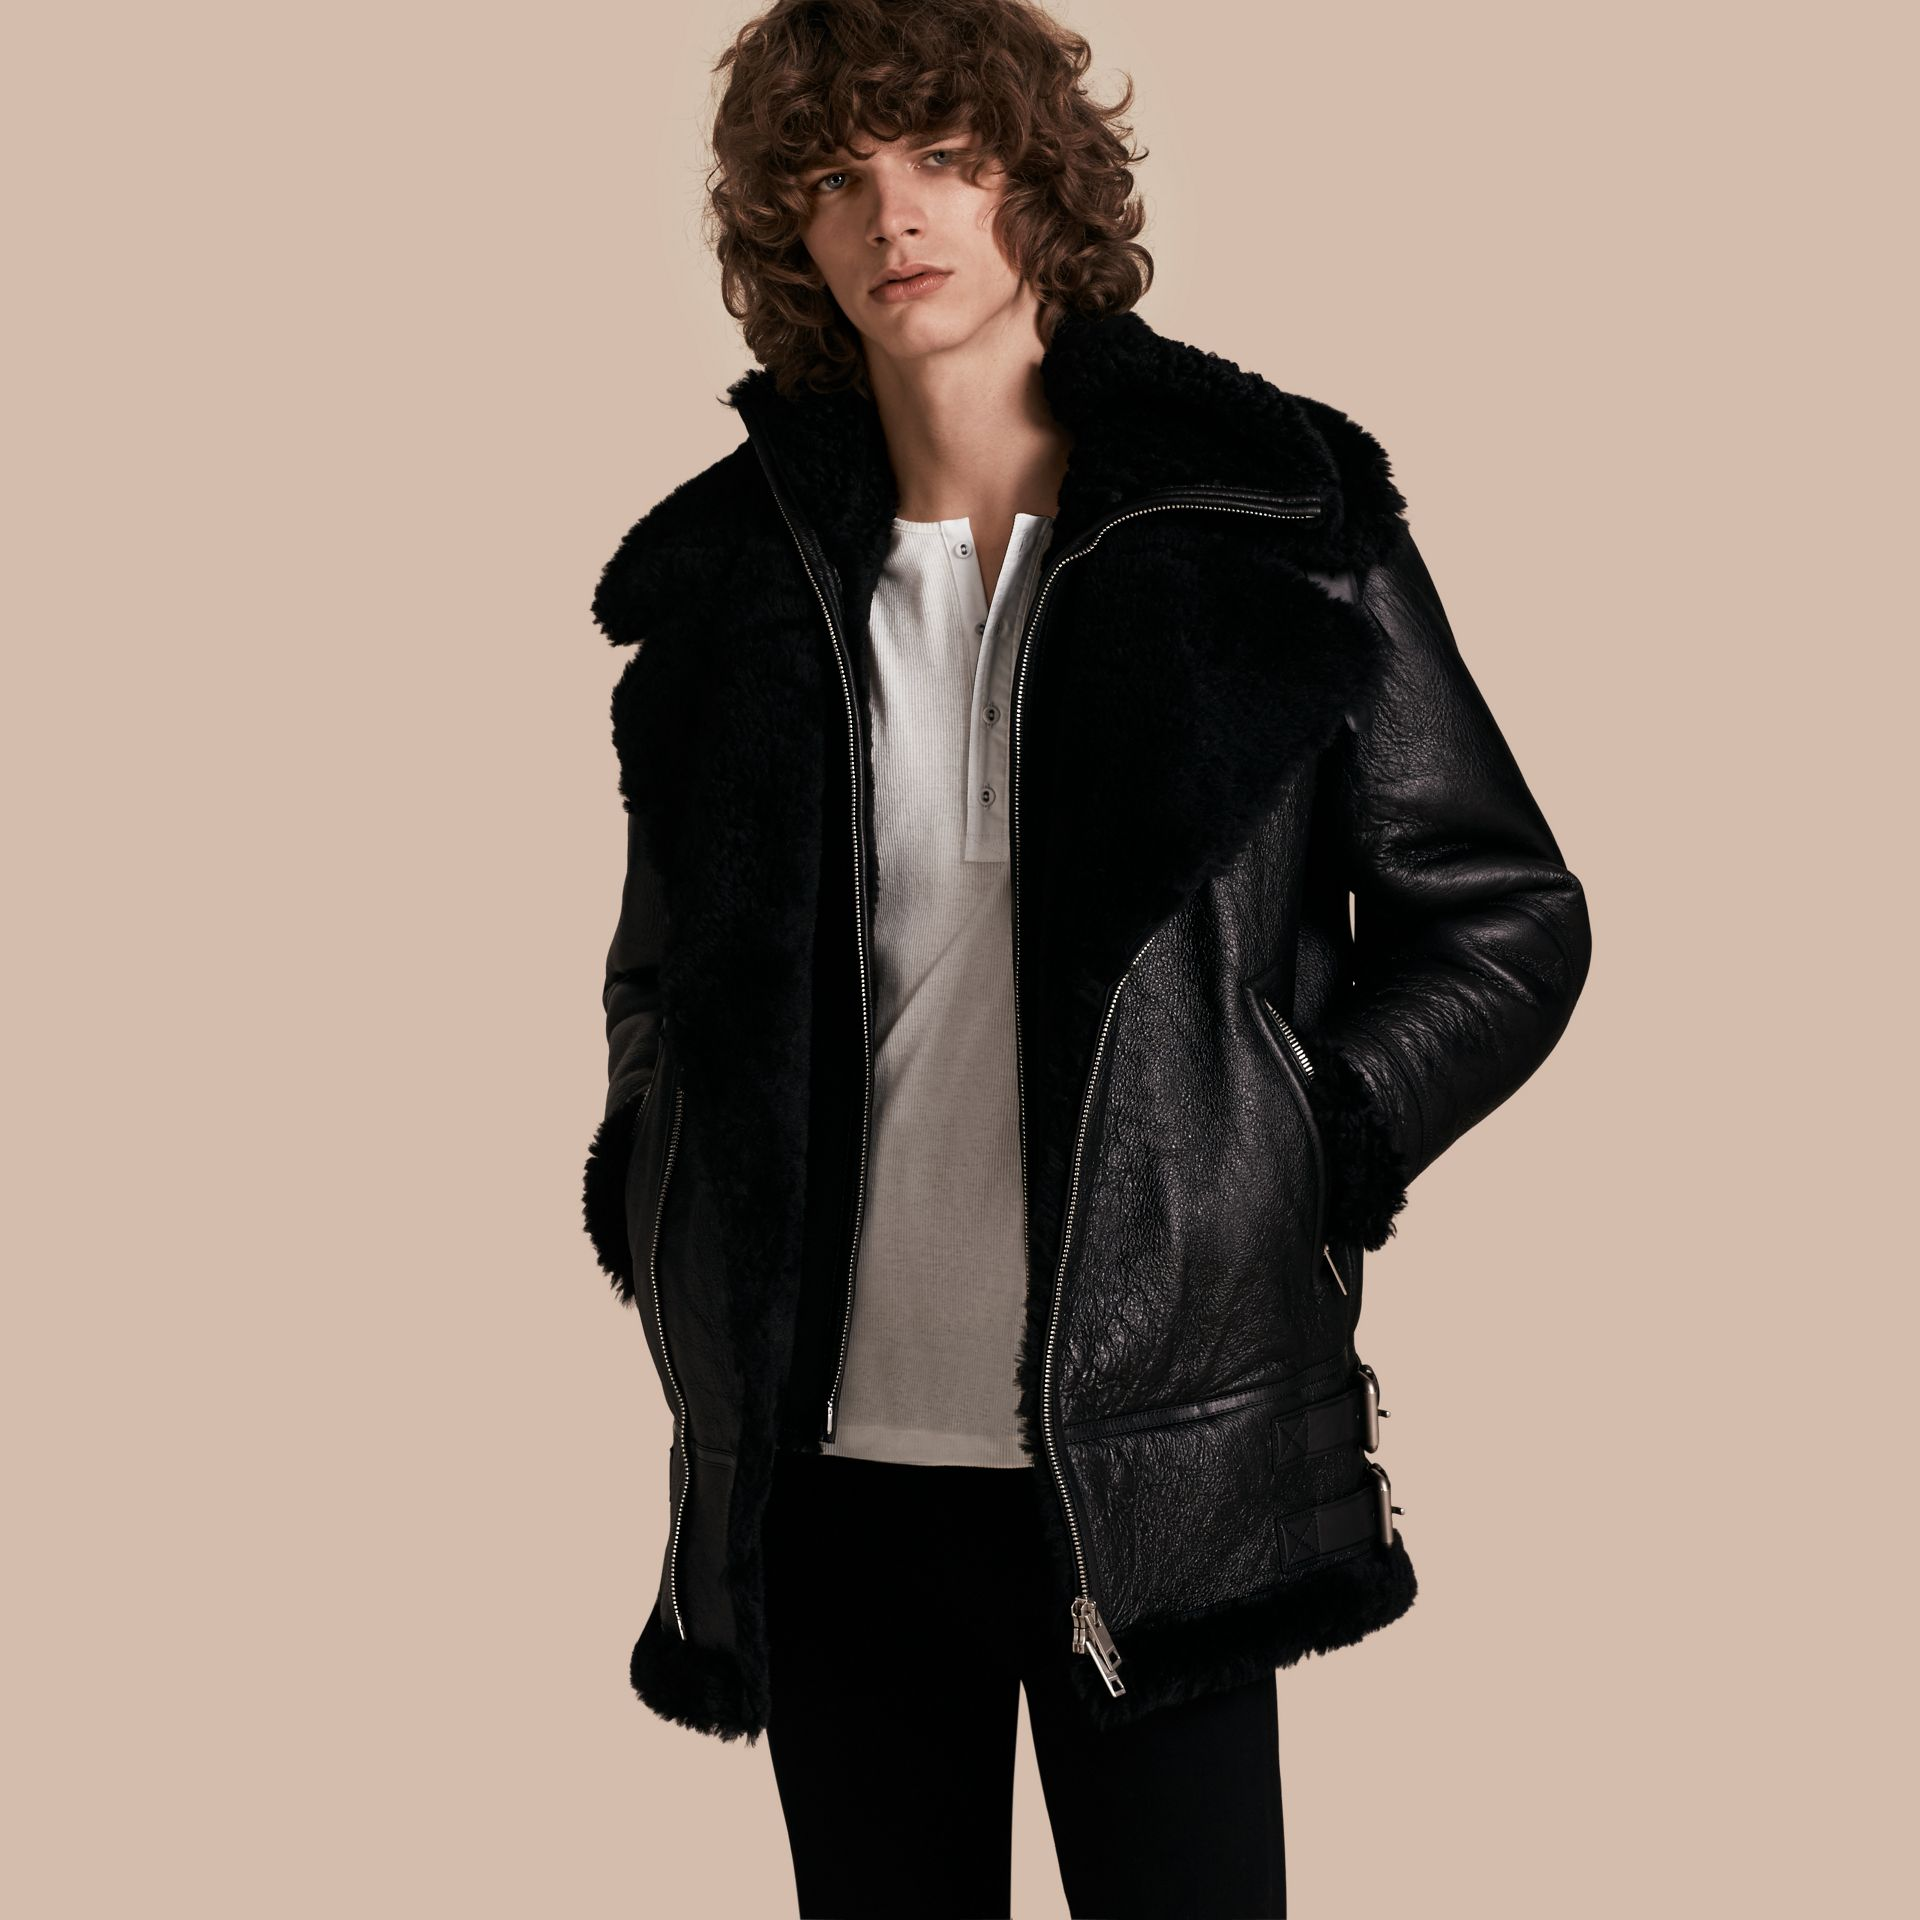 Black Long-line Shearling Aviator Jacket with Zip-out Bib - gallery image 1